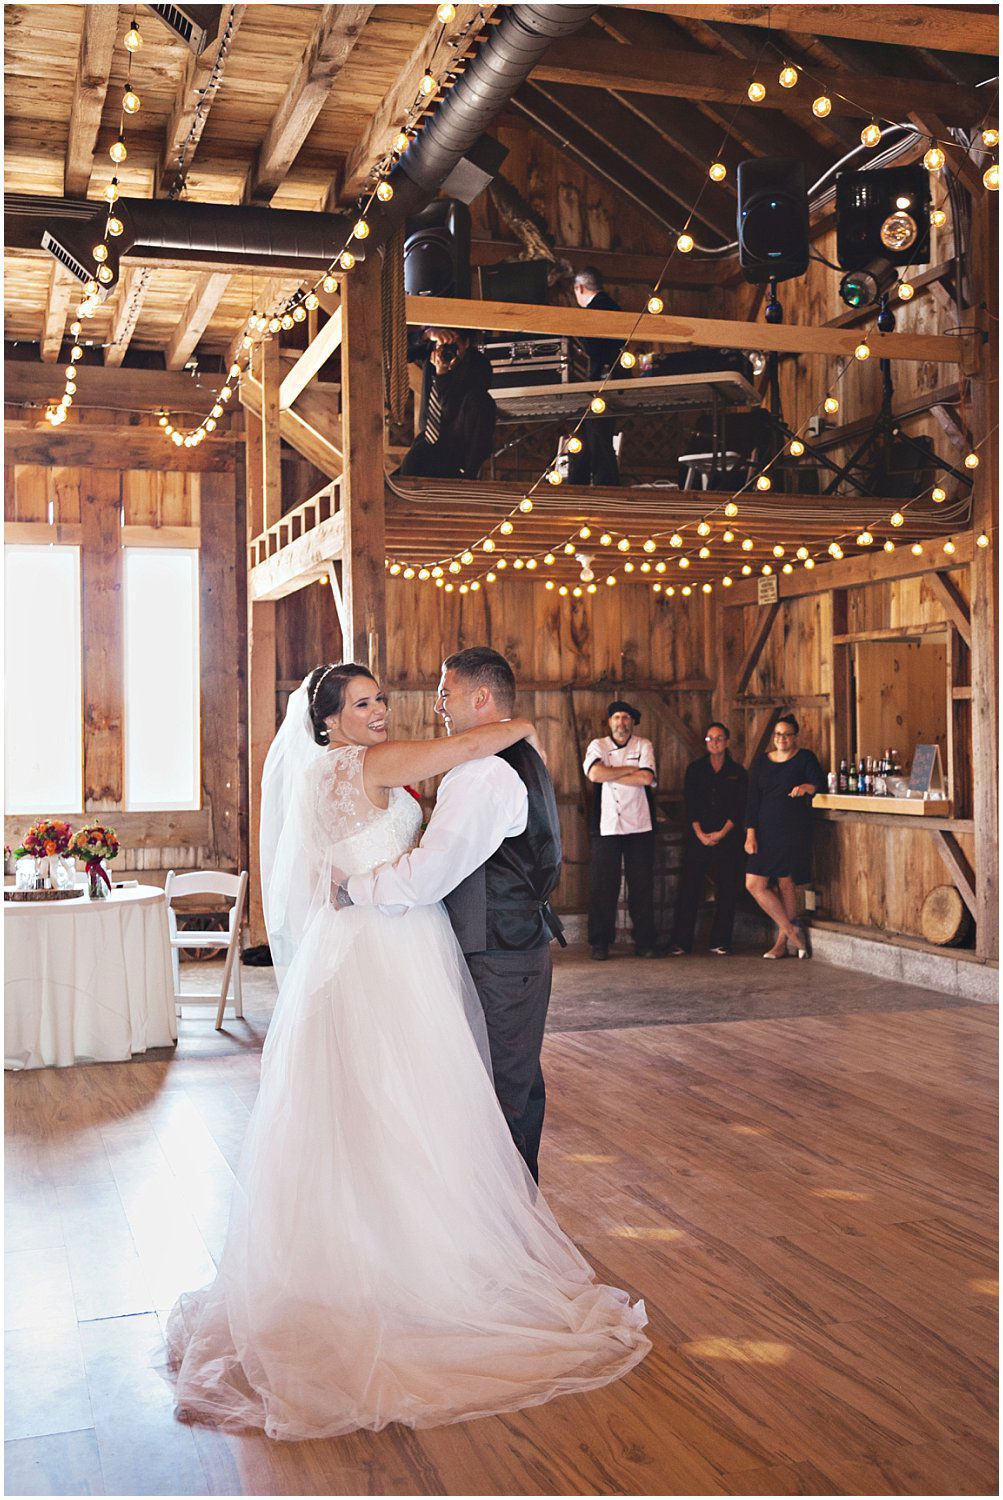 allen-hill-farm-wedding-brooklyn-connecticut-nicole-chaput-photography-009.jpg